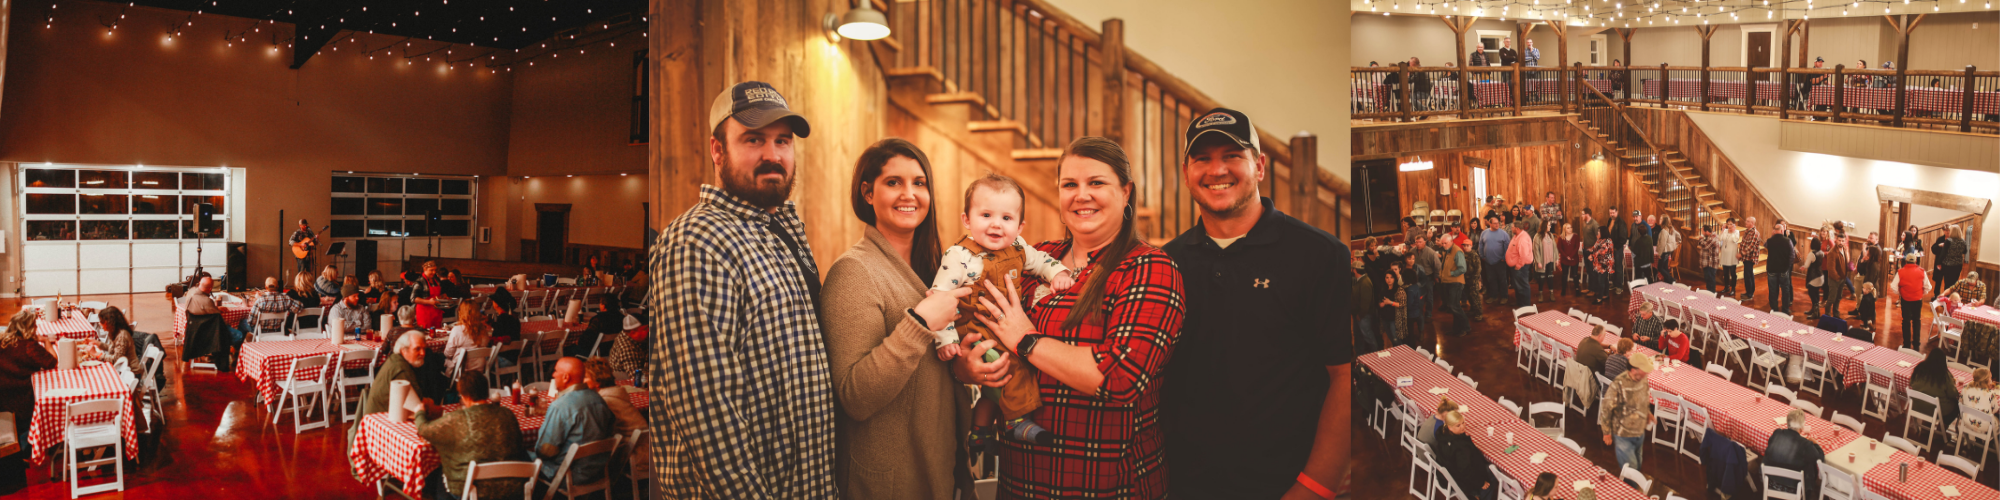 Events at Rabbit Ridge Farms in Bee Branch, AR